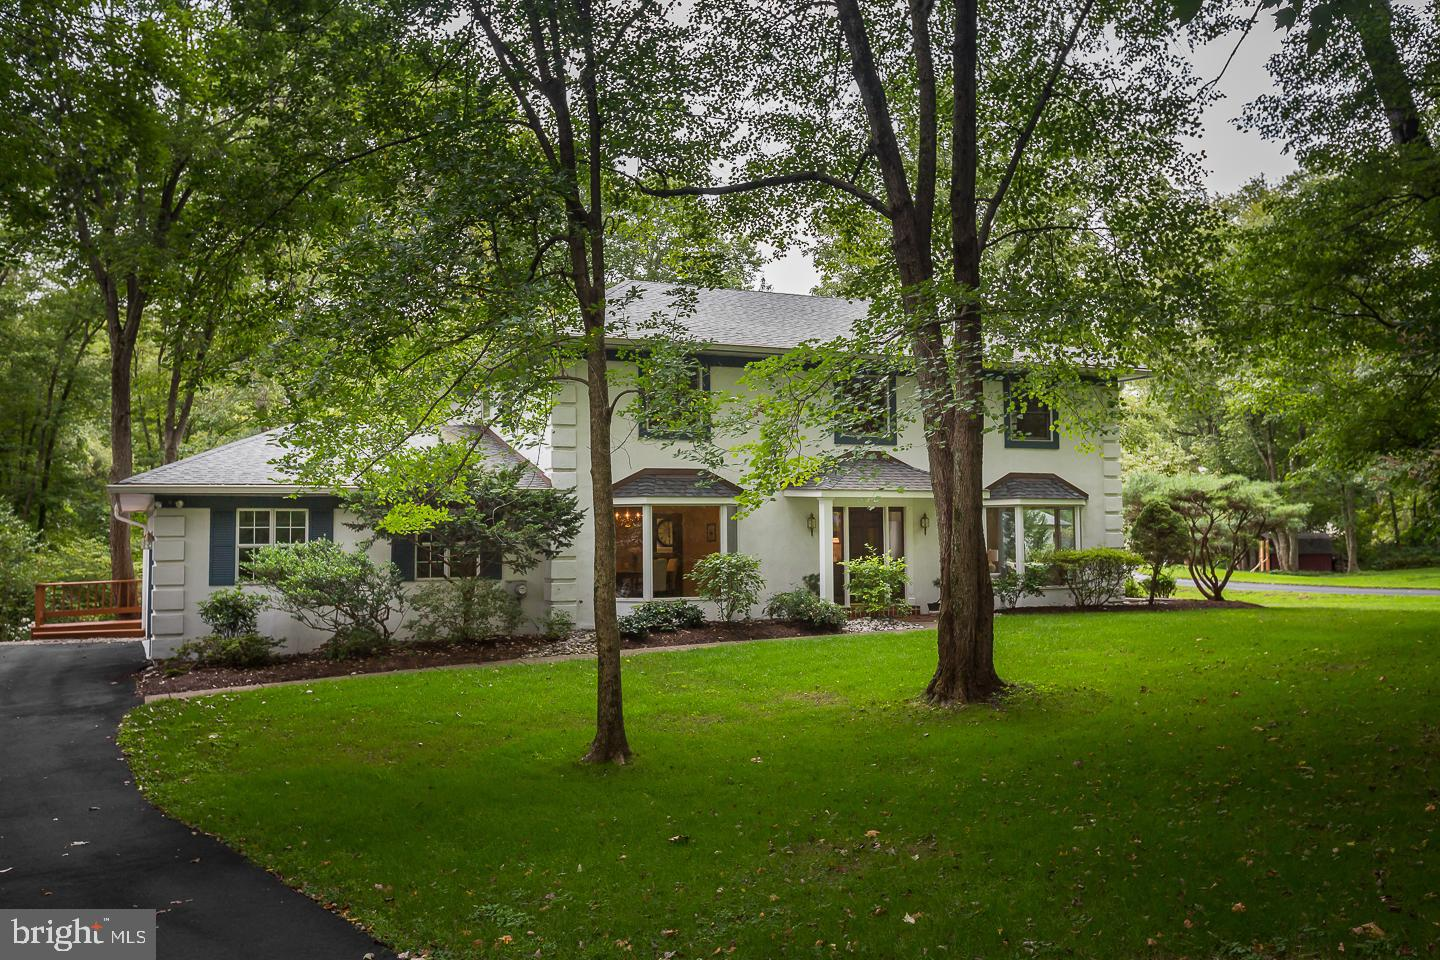 929 HUNT ROAD, RADNOR, PA 19008